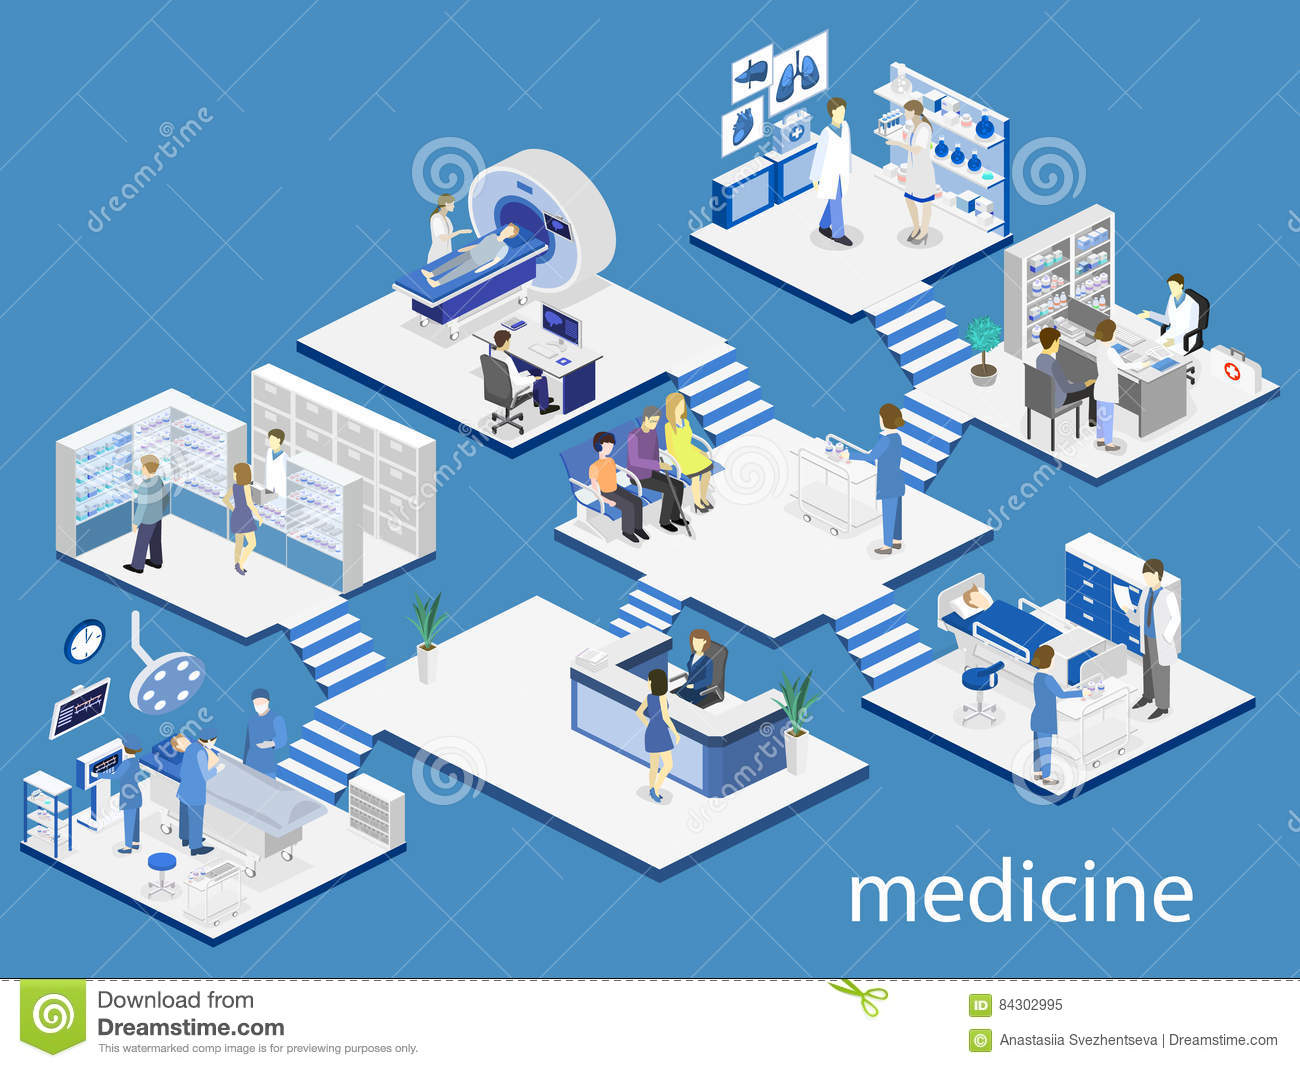 Hospital Reception Illustration Royalty Free Stock Photo